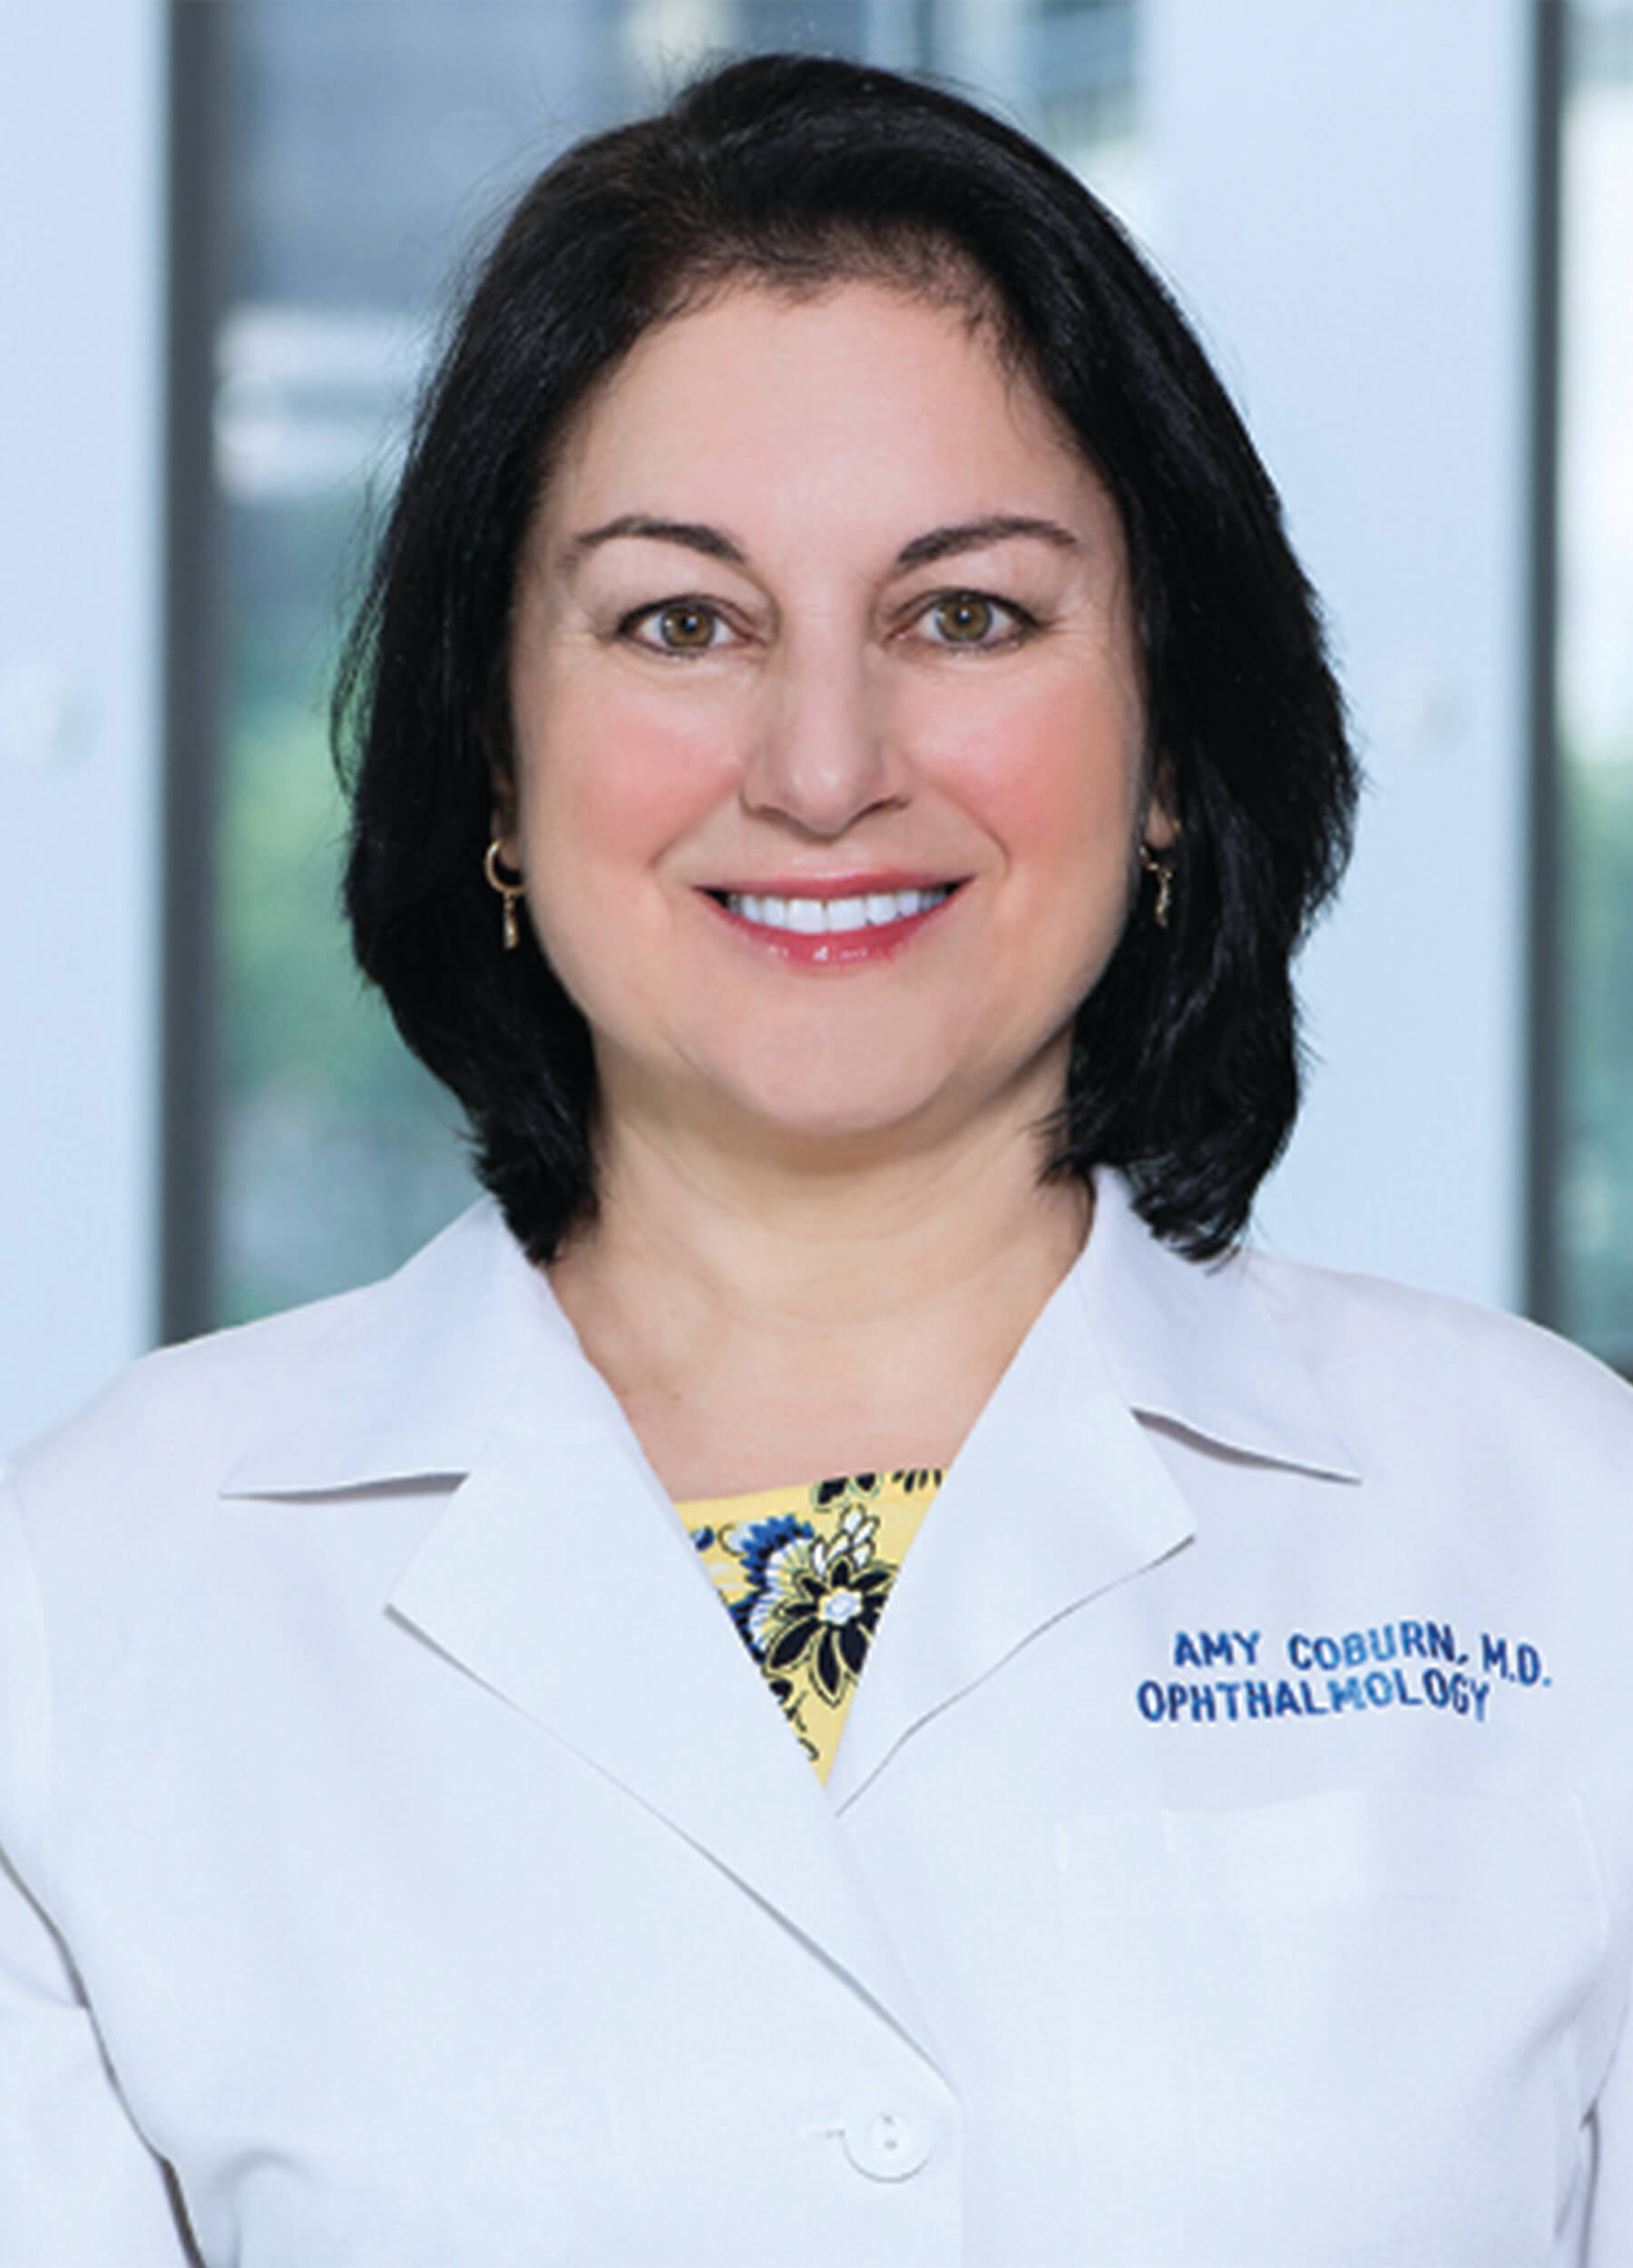 Amy Coburn, MD